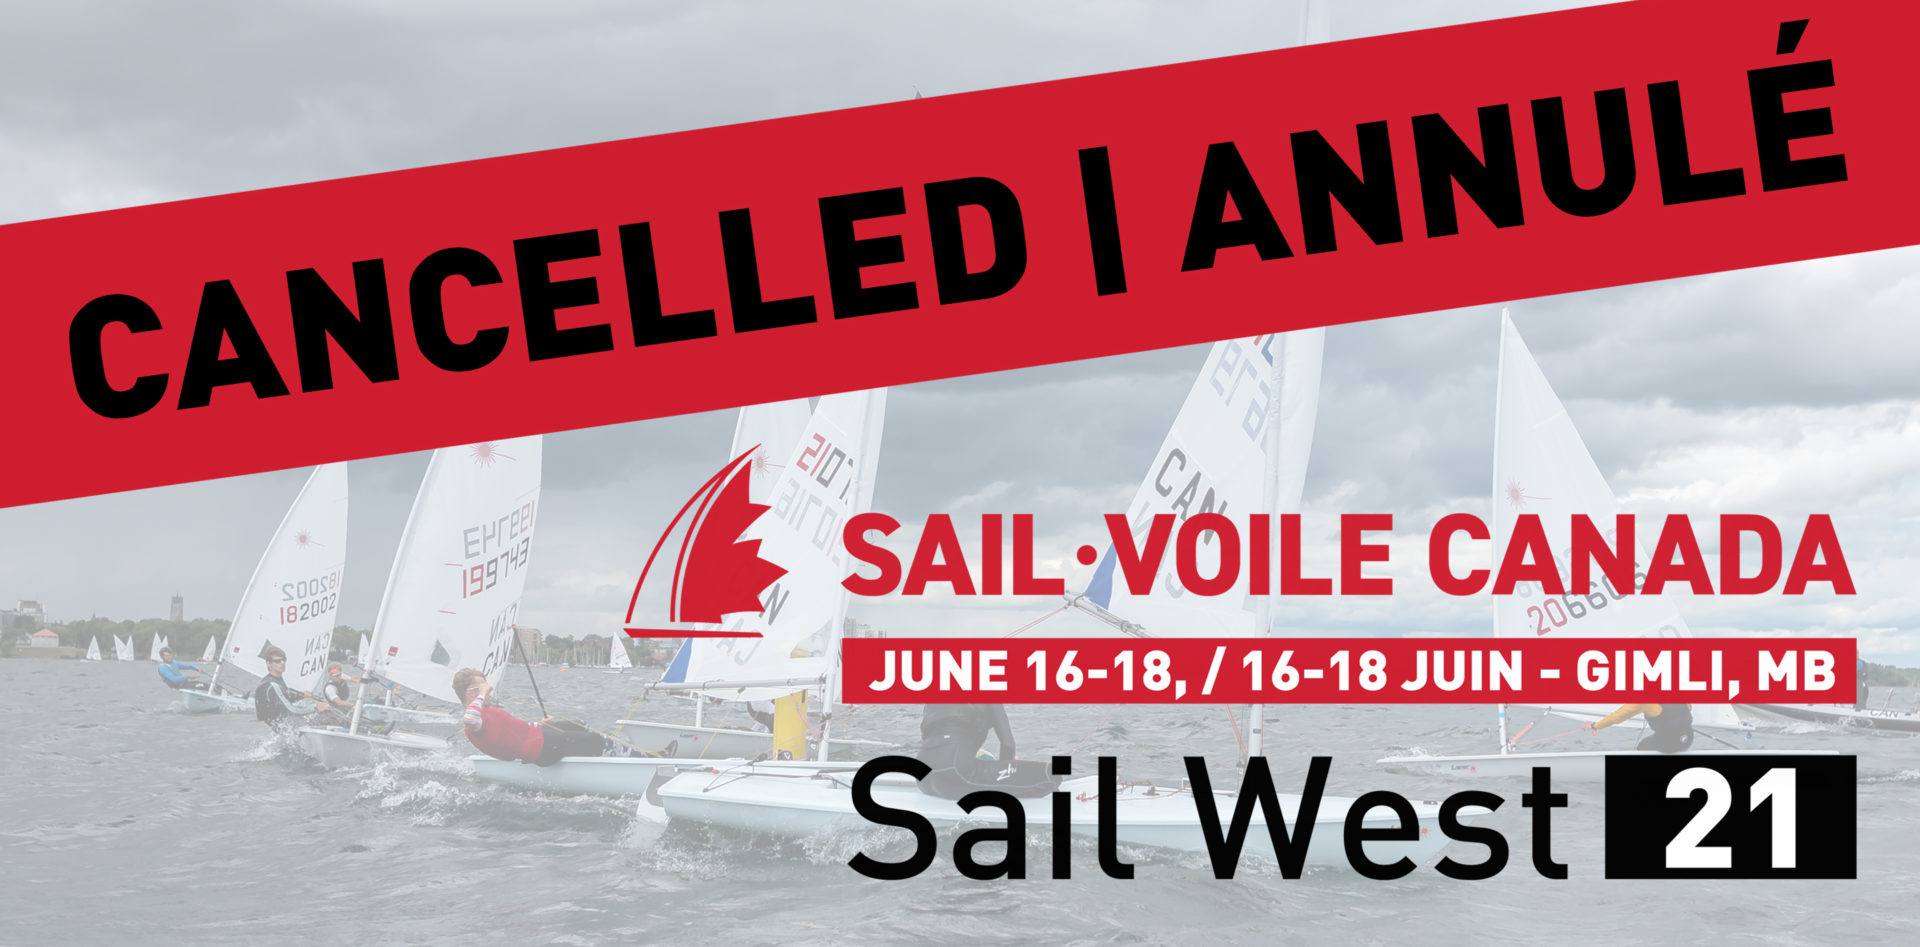 2021 Sail West cancelled